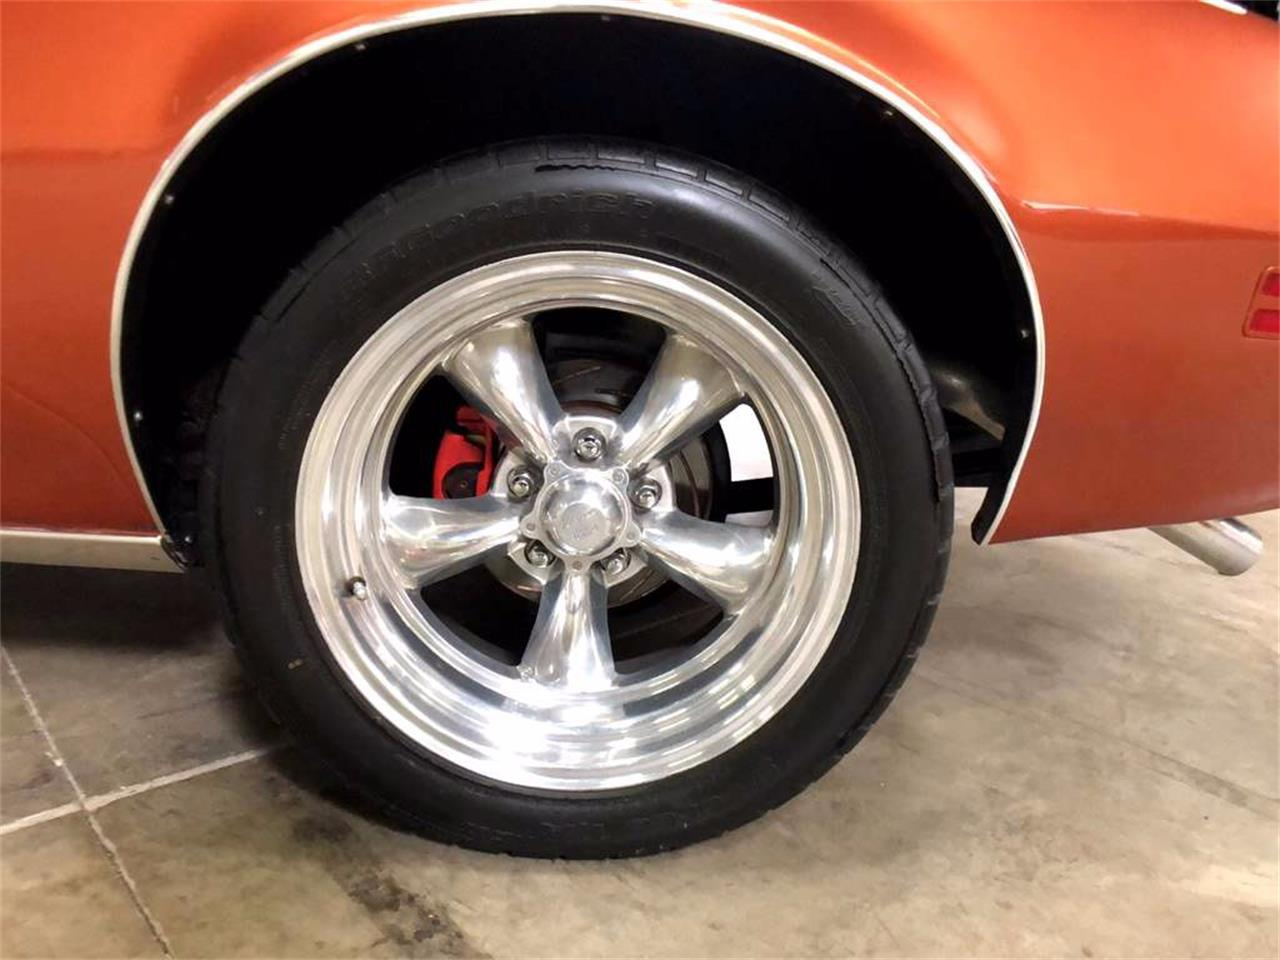 1972 Pontiac Firebird for sale in Gurnee, IL – photo 65